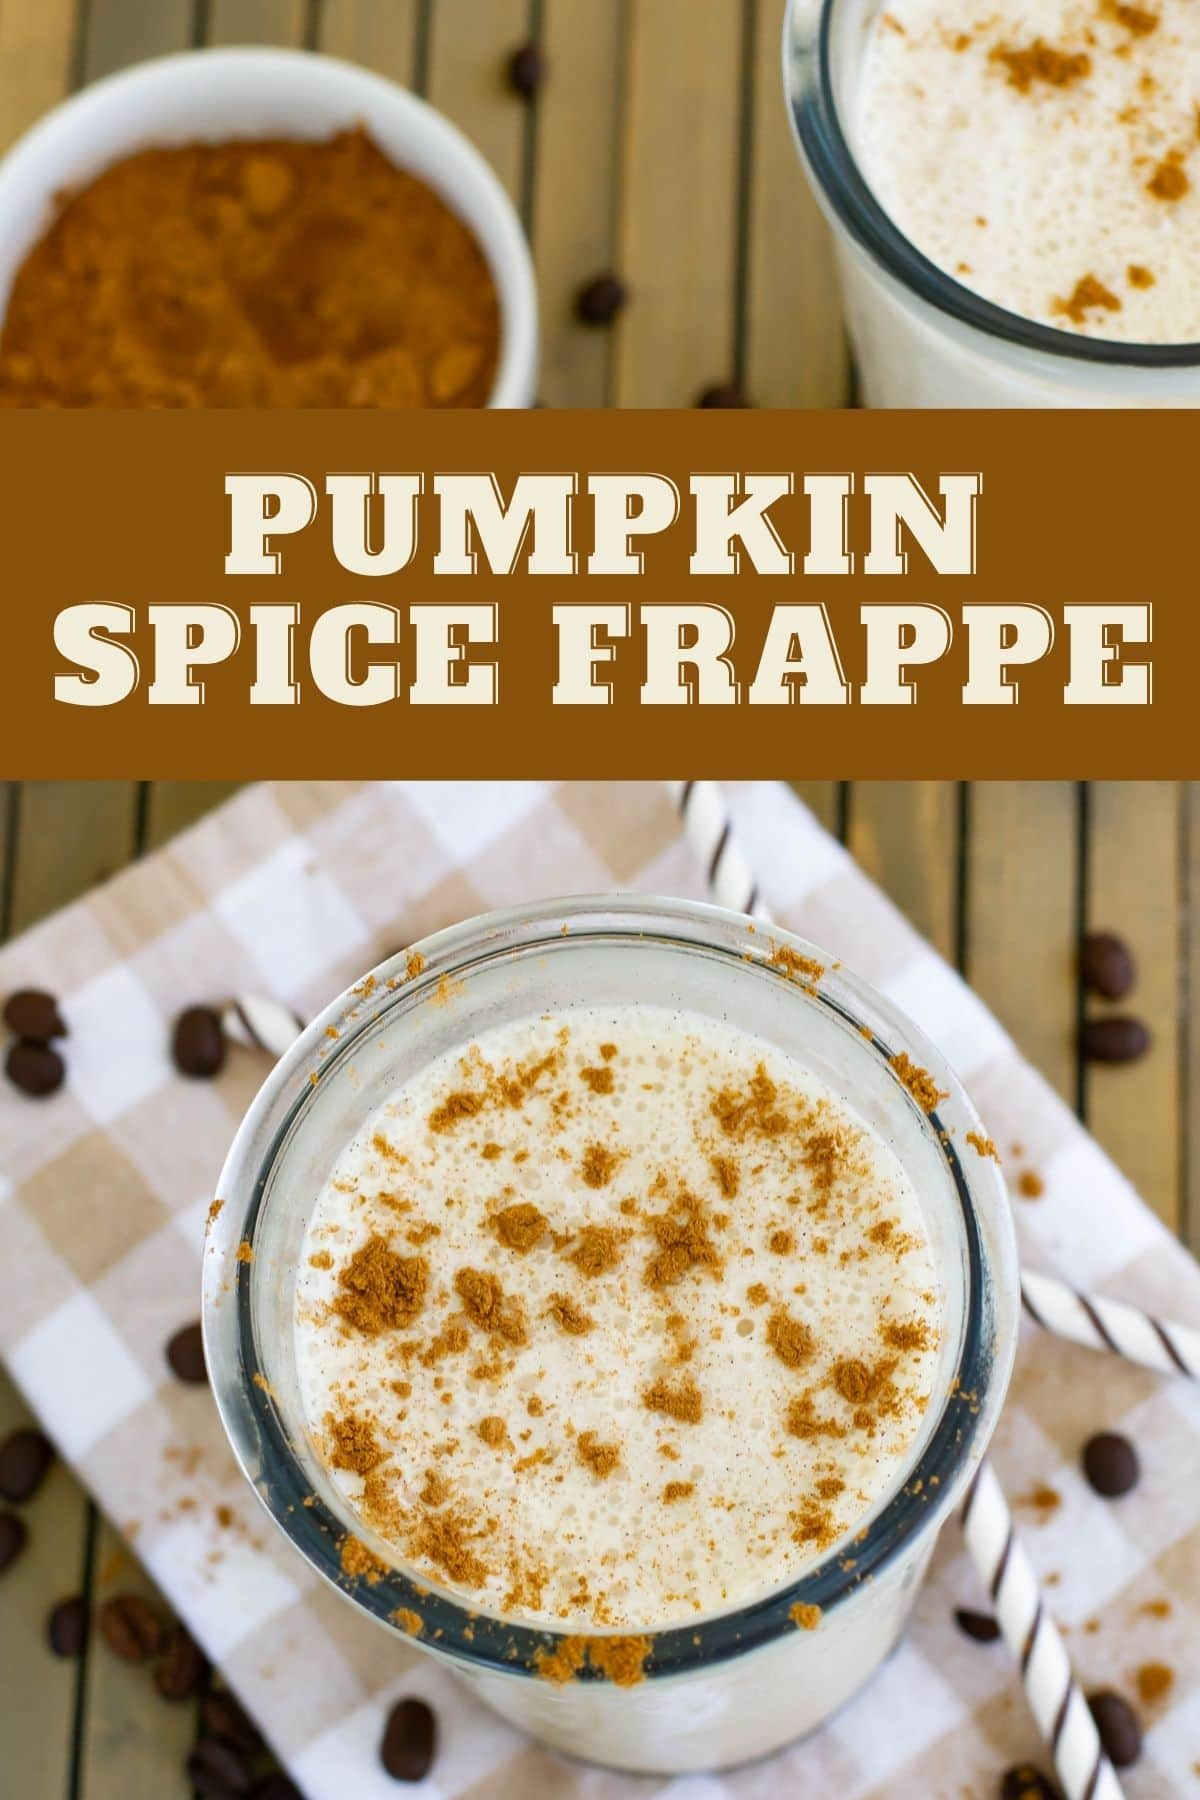 A vertical image of a glassfull of Pumpkin Spice Frappe.